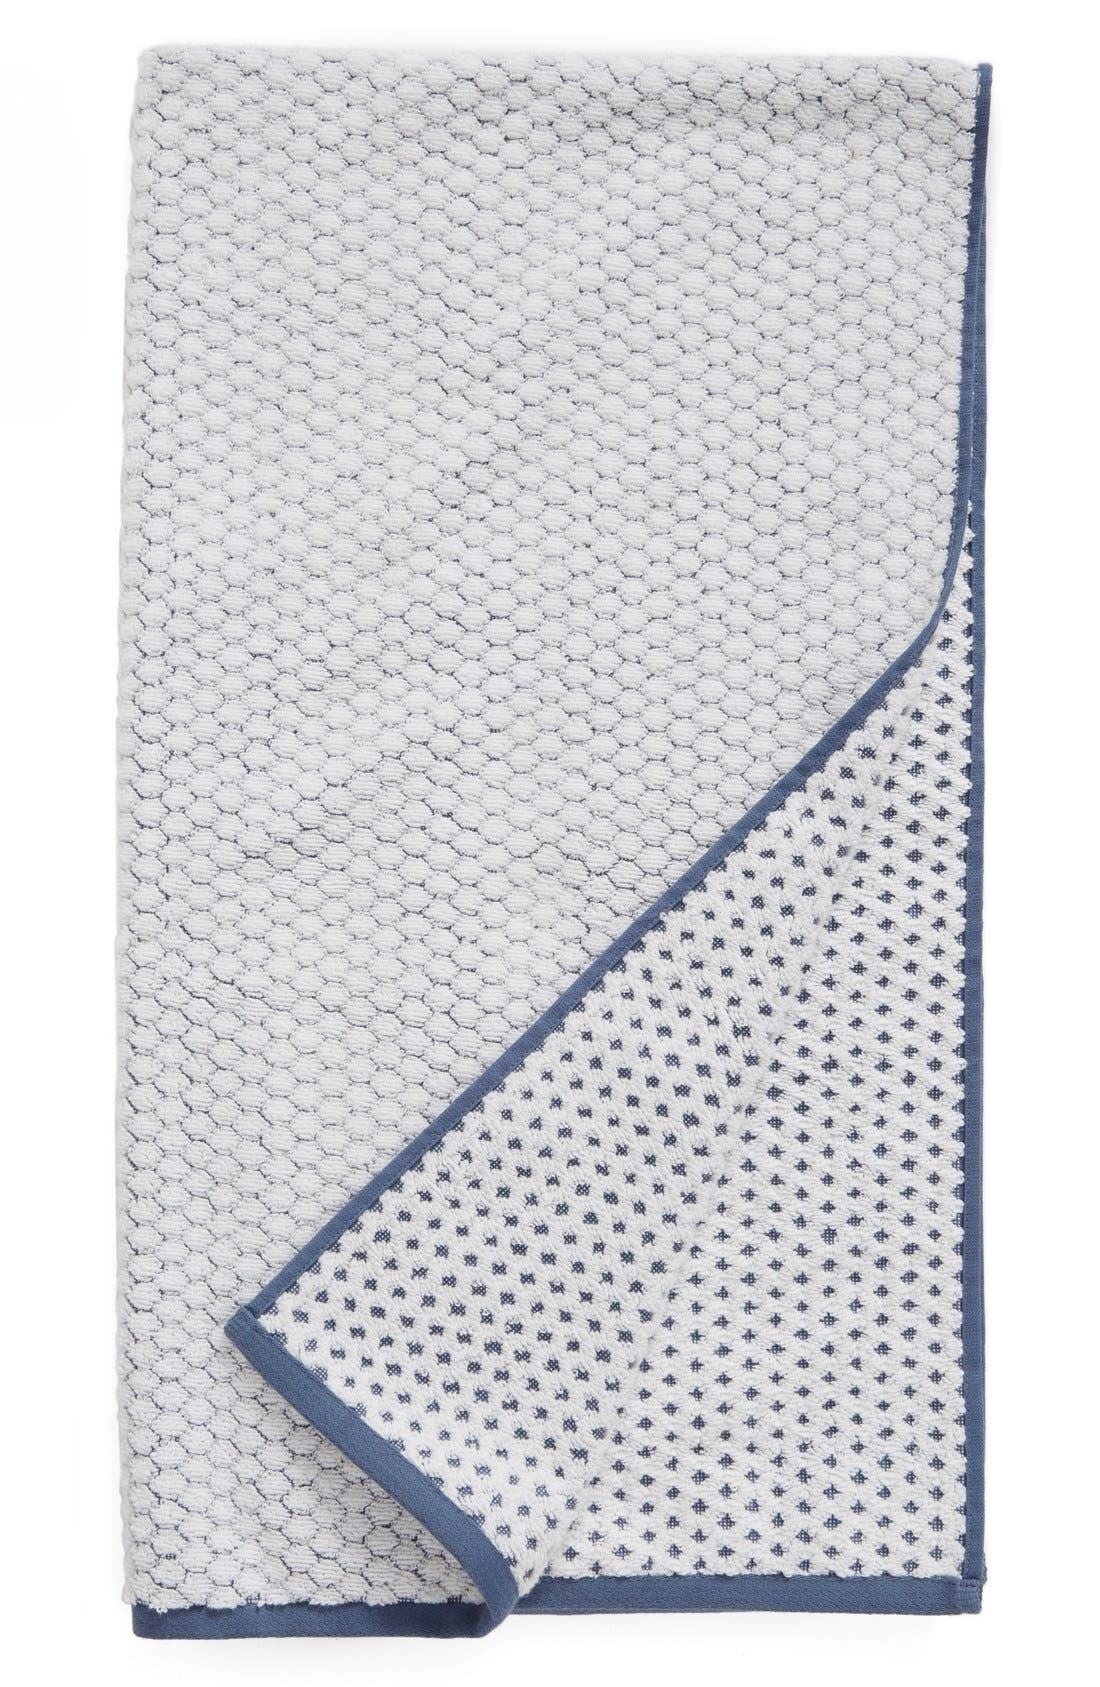 Alternate Image 1 Selected - Nordstrom at Home Cobble Bath Towel (2 for $49)